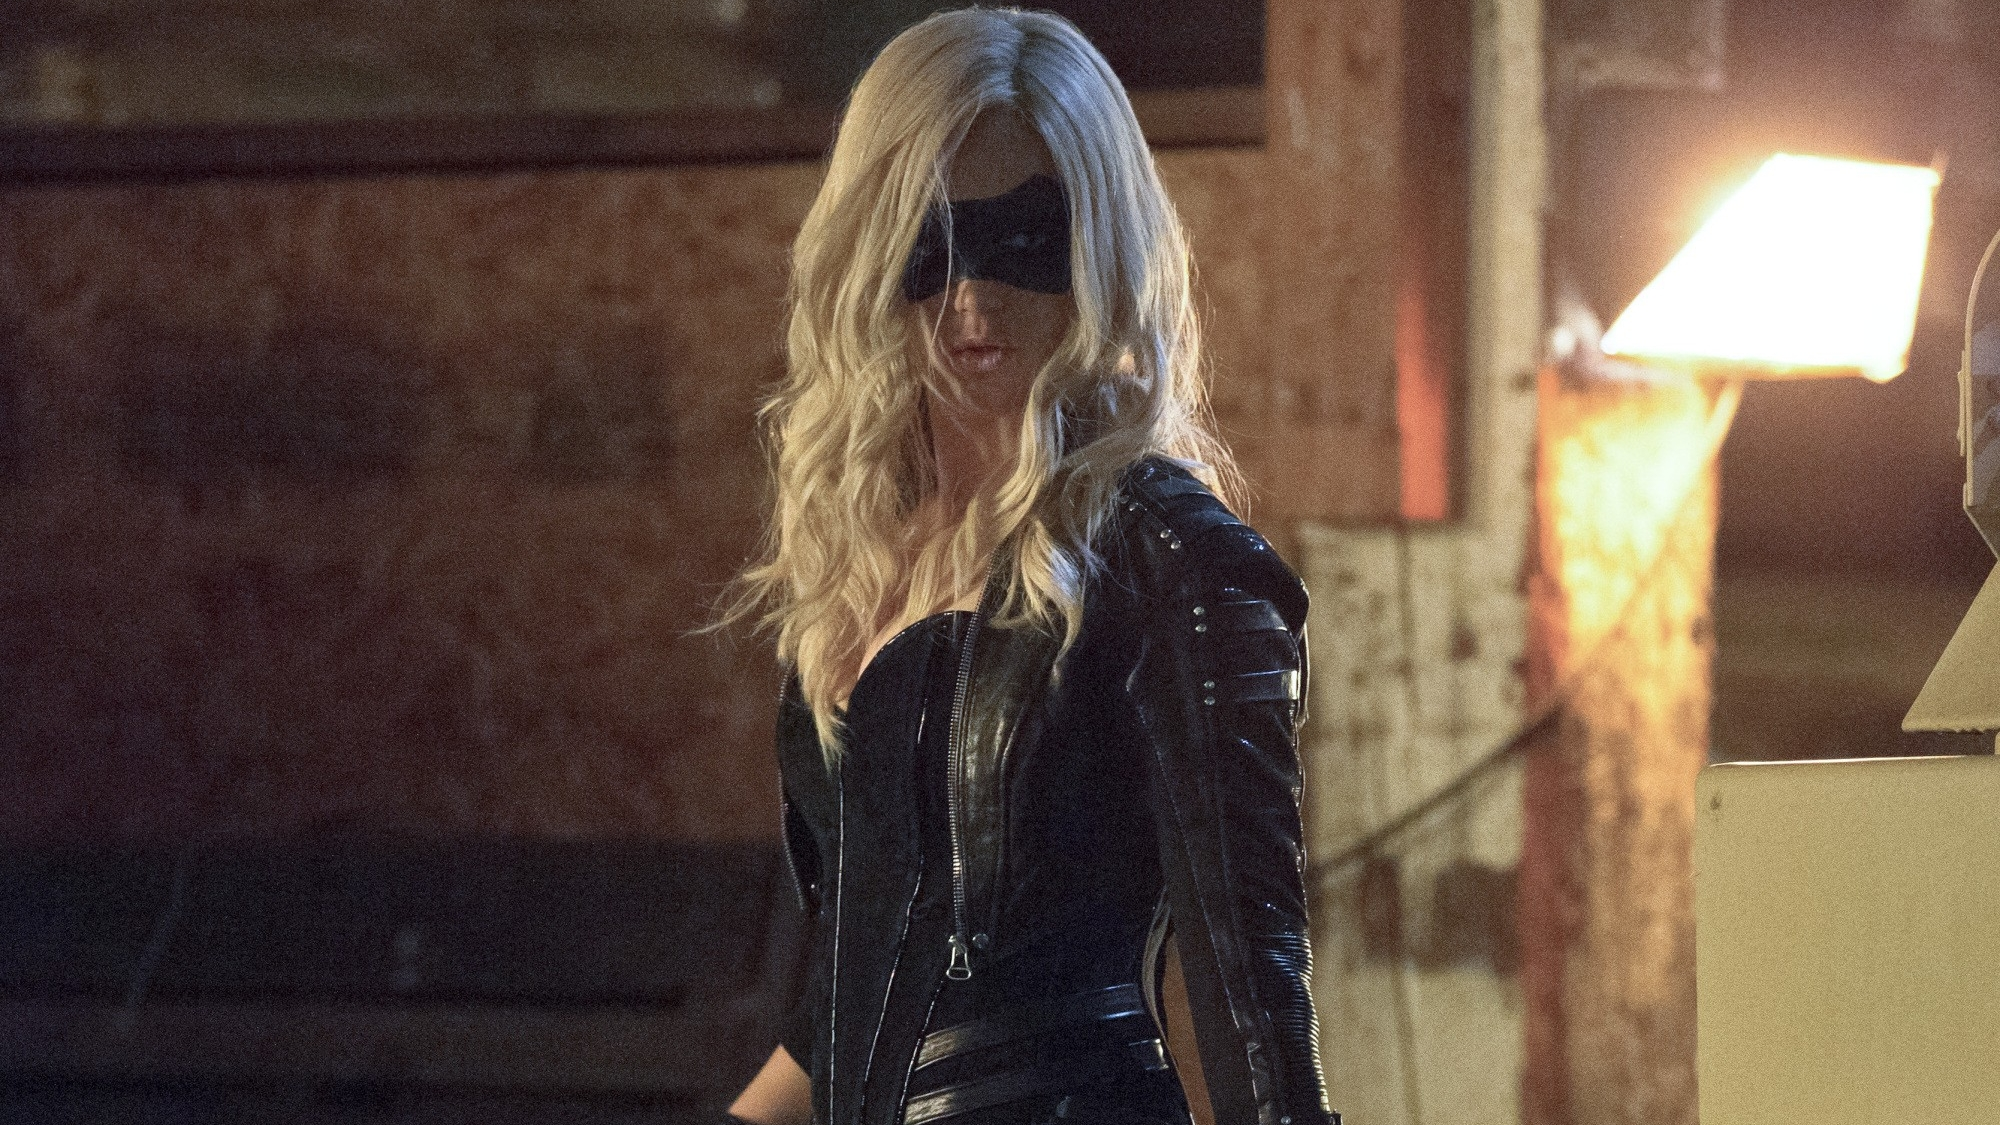 Download Wallpaper From Tv Series Arrow With Tags Black Canary